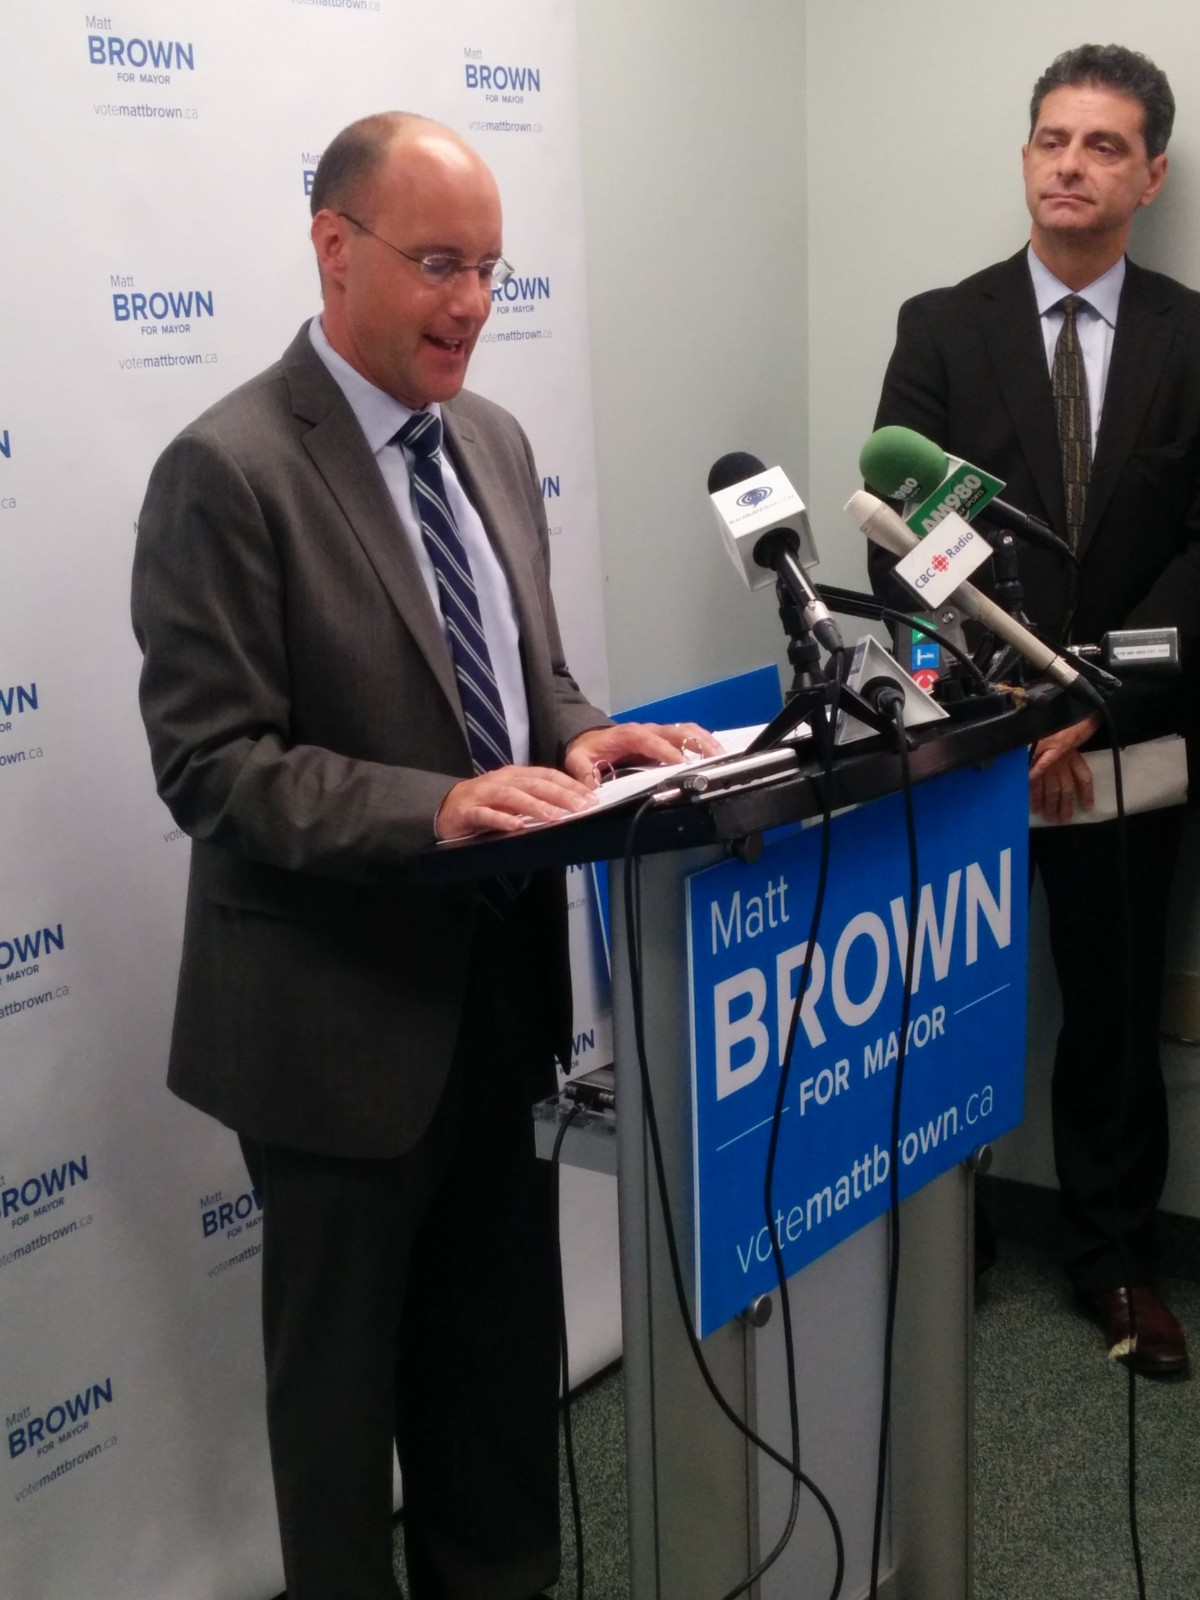 Brown attacks Cheng, gets new endorsements at morning news conference